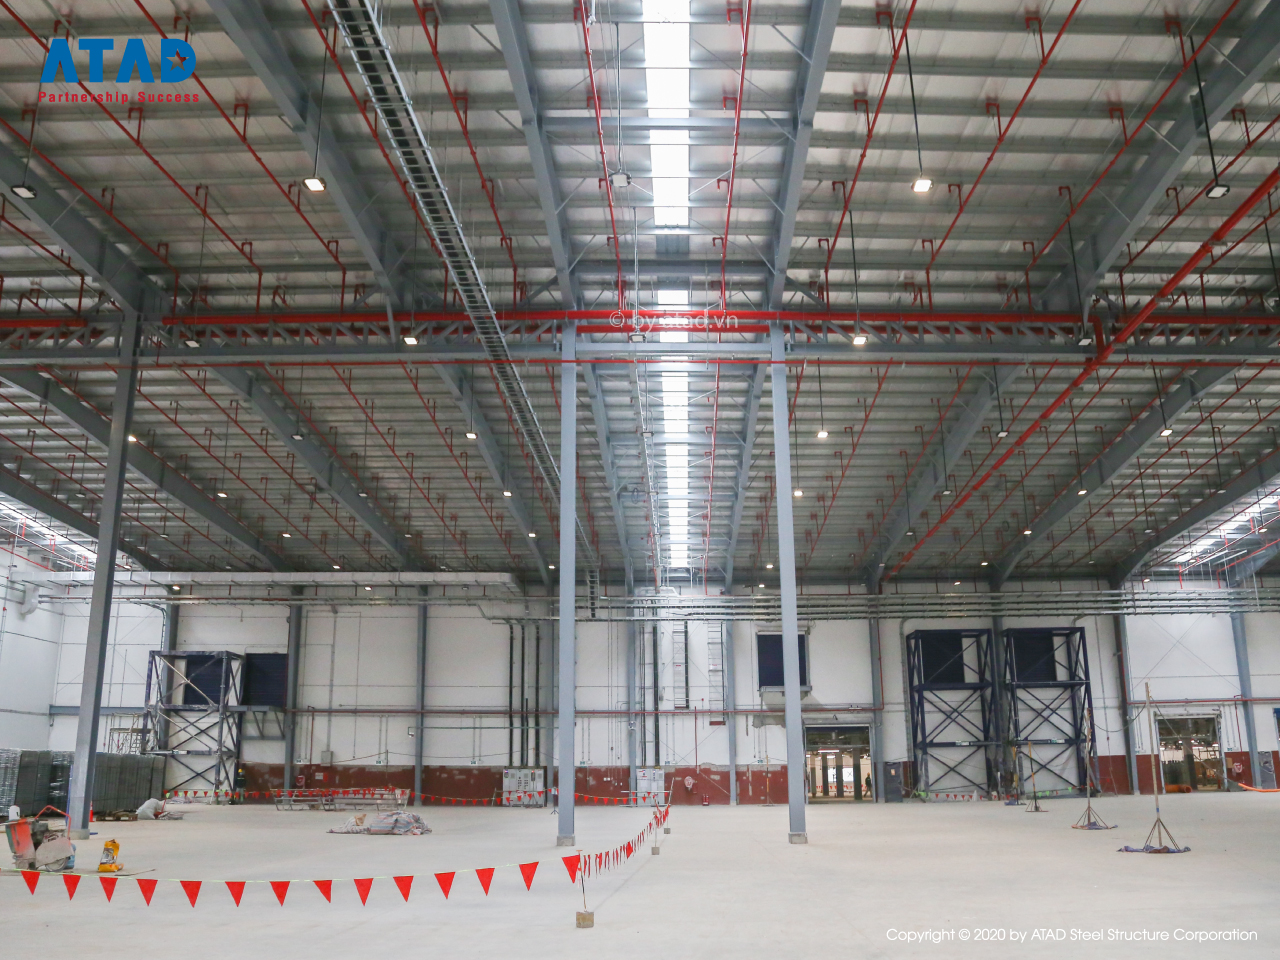 ATAD completed Jotun Vietnam Greenfield factory project